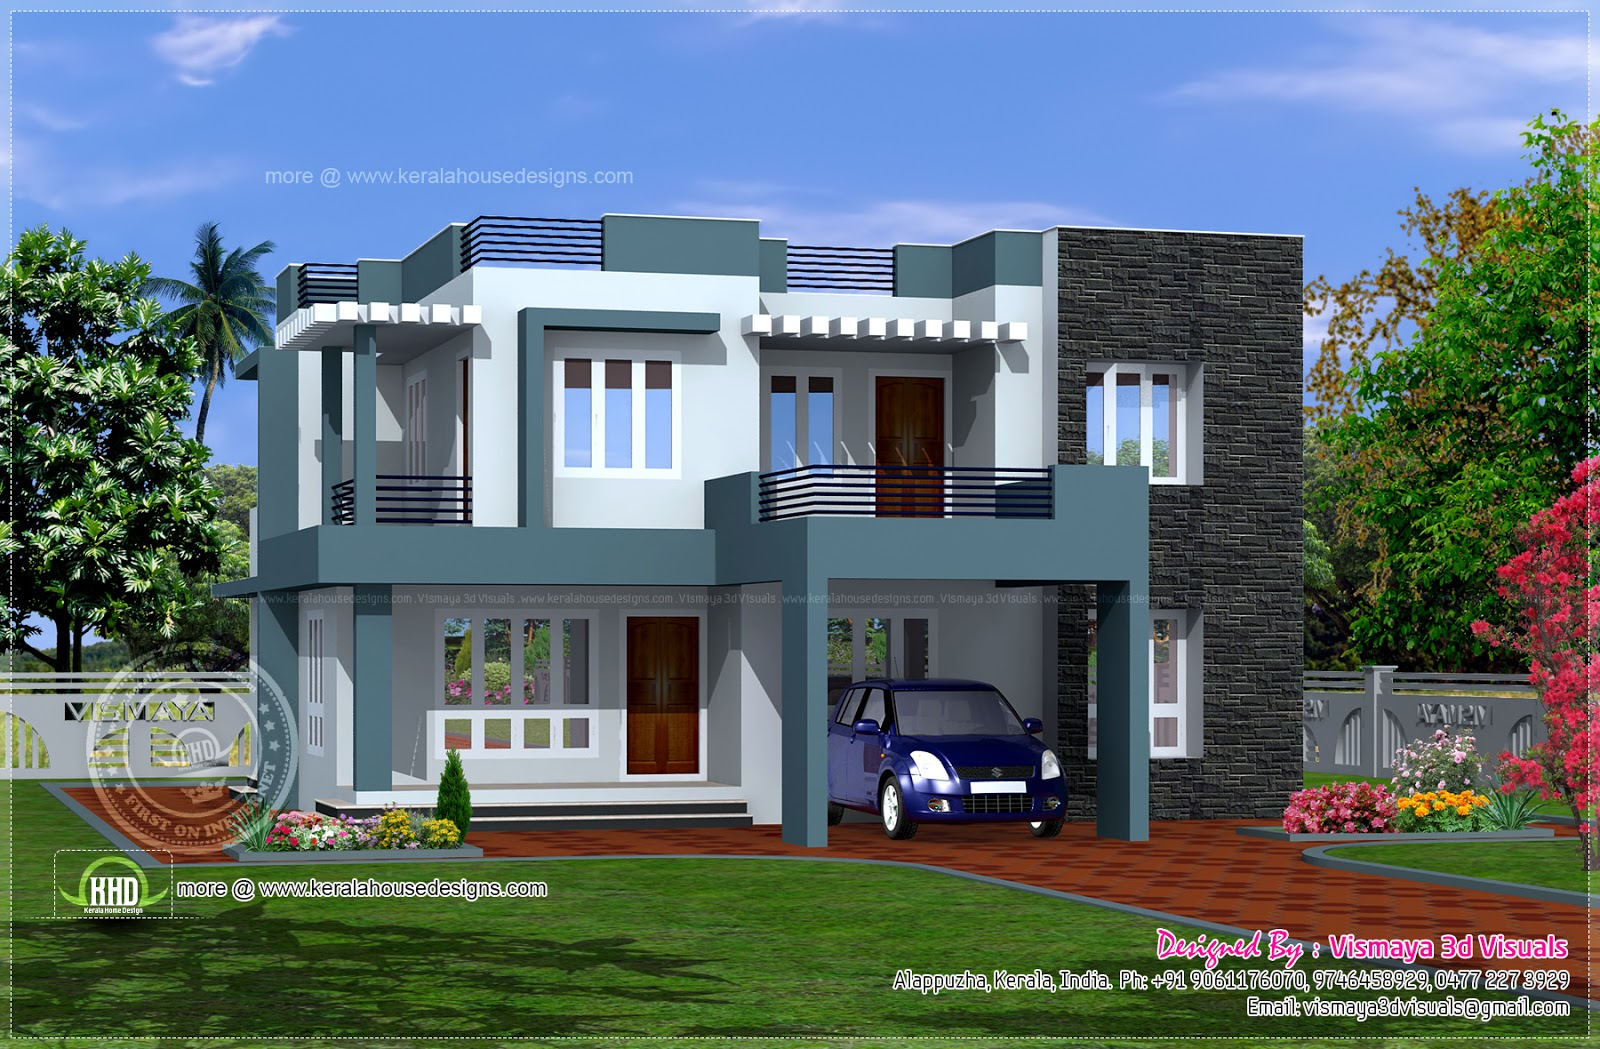 Simple contemporary style villa plan kerala home design for Easy to build small house plans